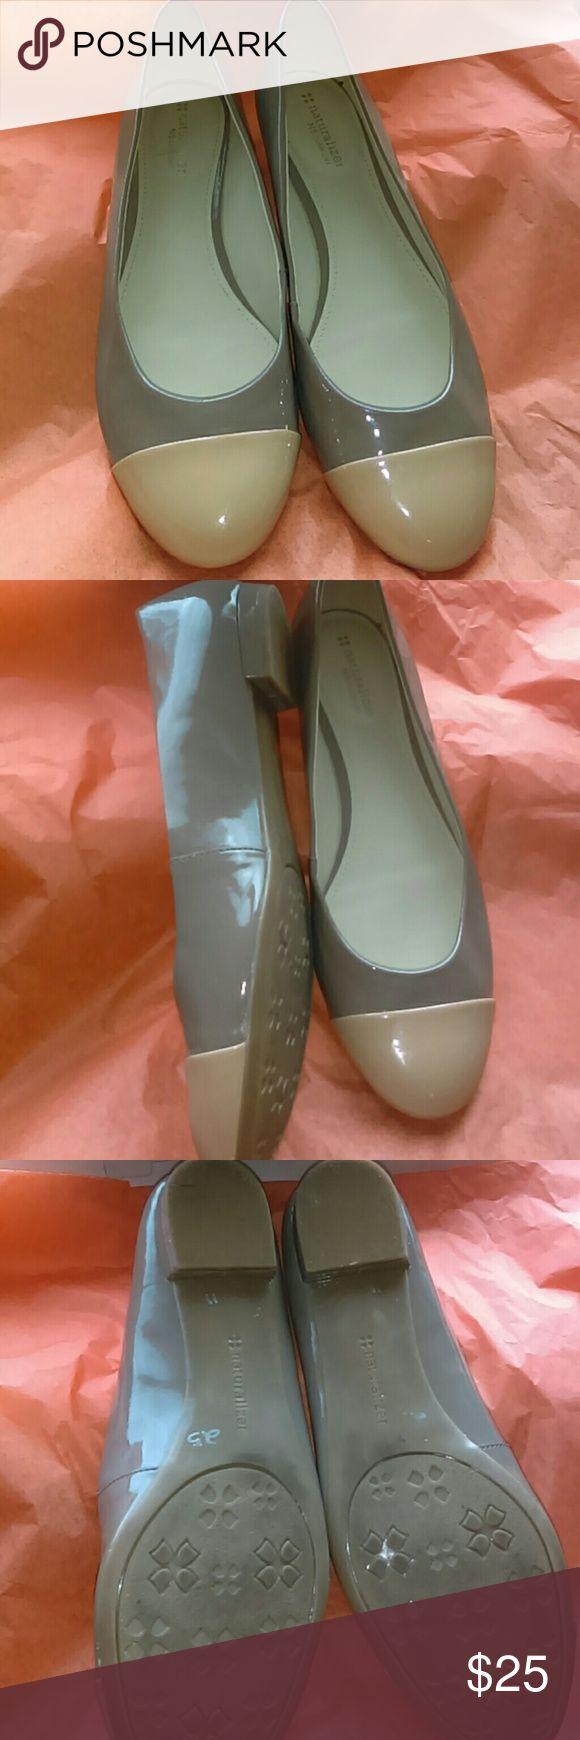 Two tone patent leather flat Naturalized comfort Size 11 Two Tone Flat Ladies shoes, gently worn Naturalizer Shoes Flats & Loafers